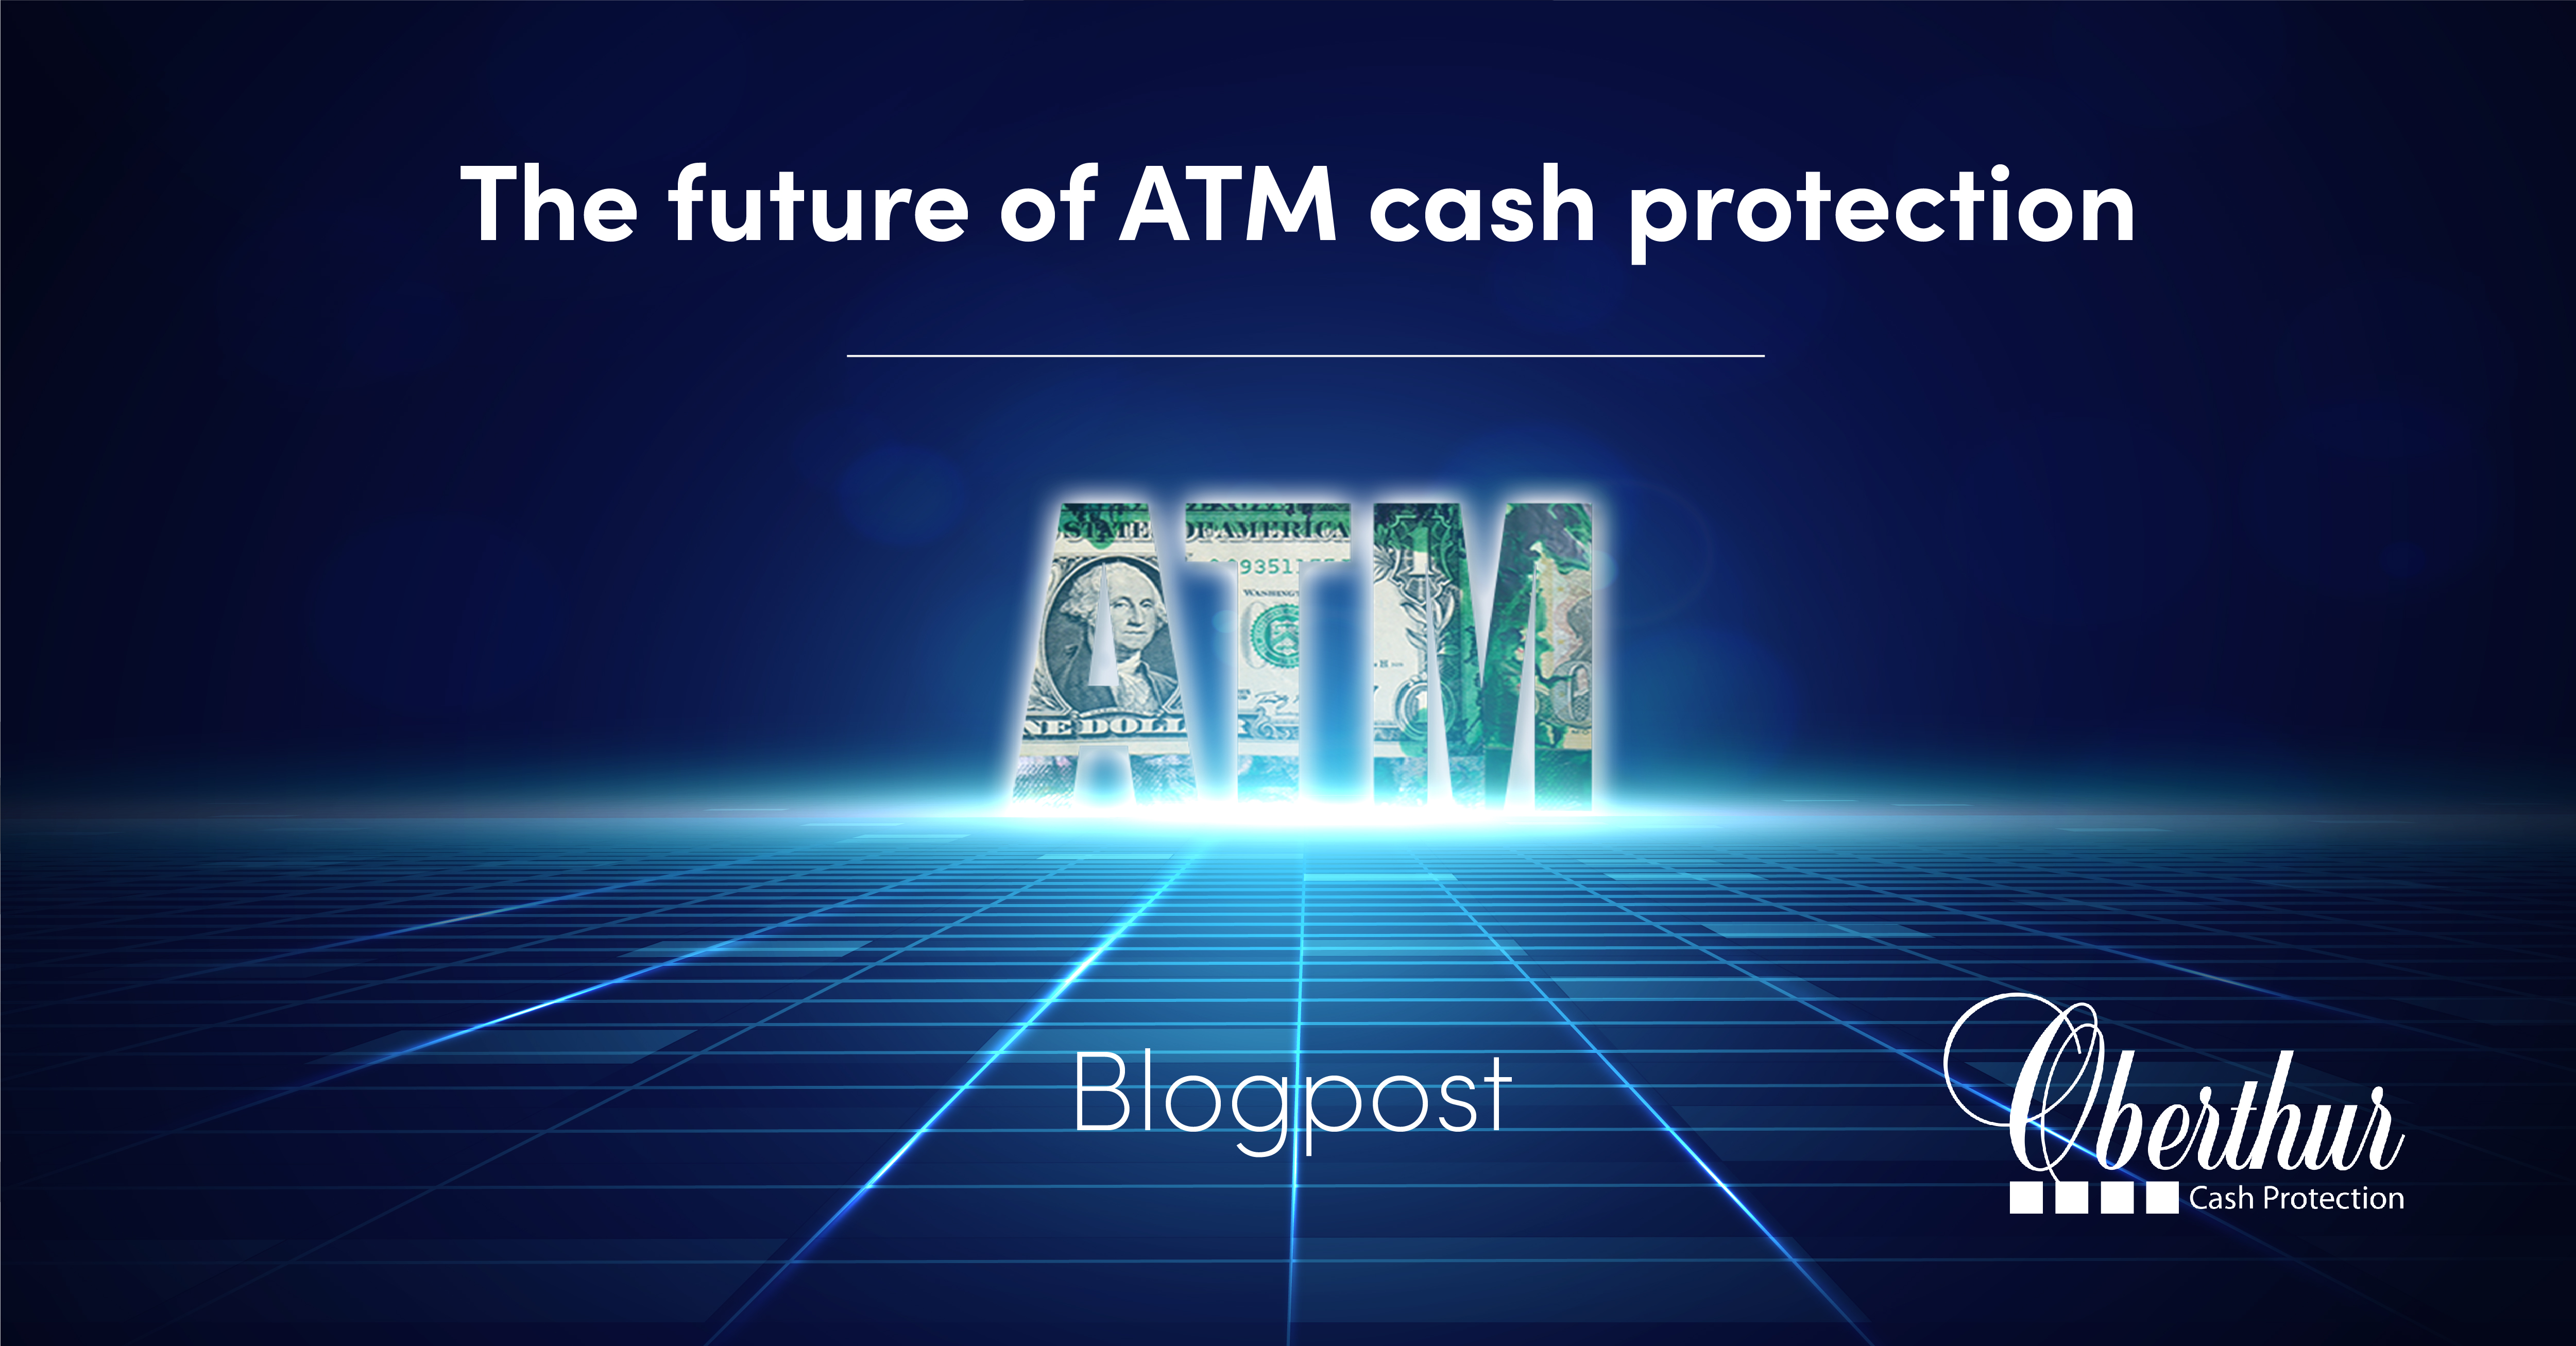 Future of ATM cash protection